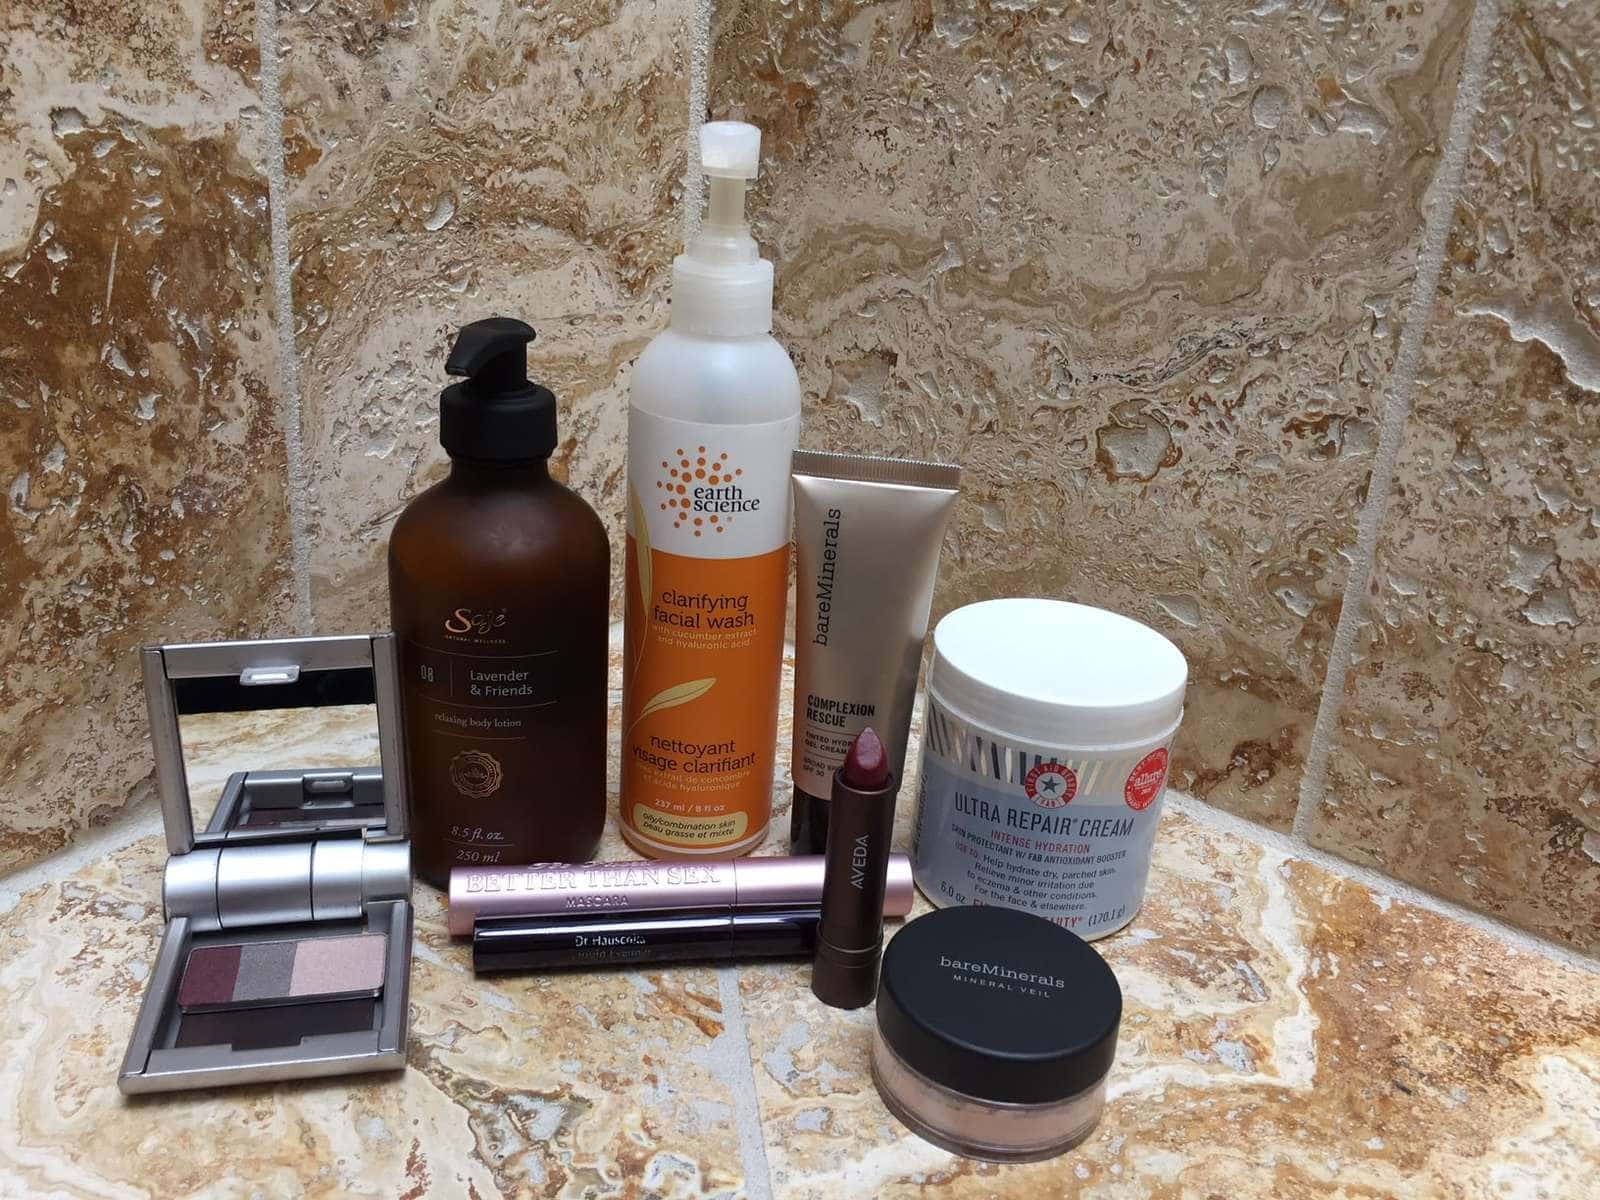 The beauty routine of Stella Carakasi. Photo depicts several bottles and jars of natural beauty skincare products on a counter.